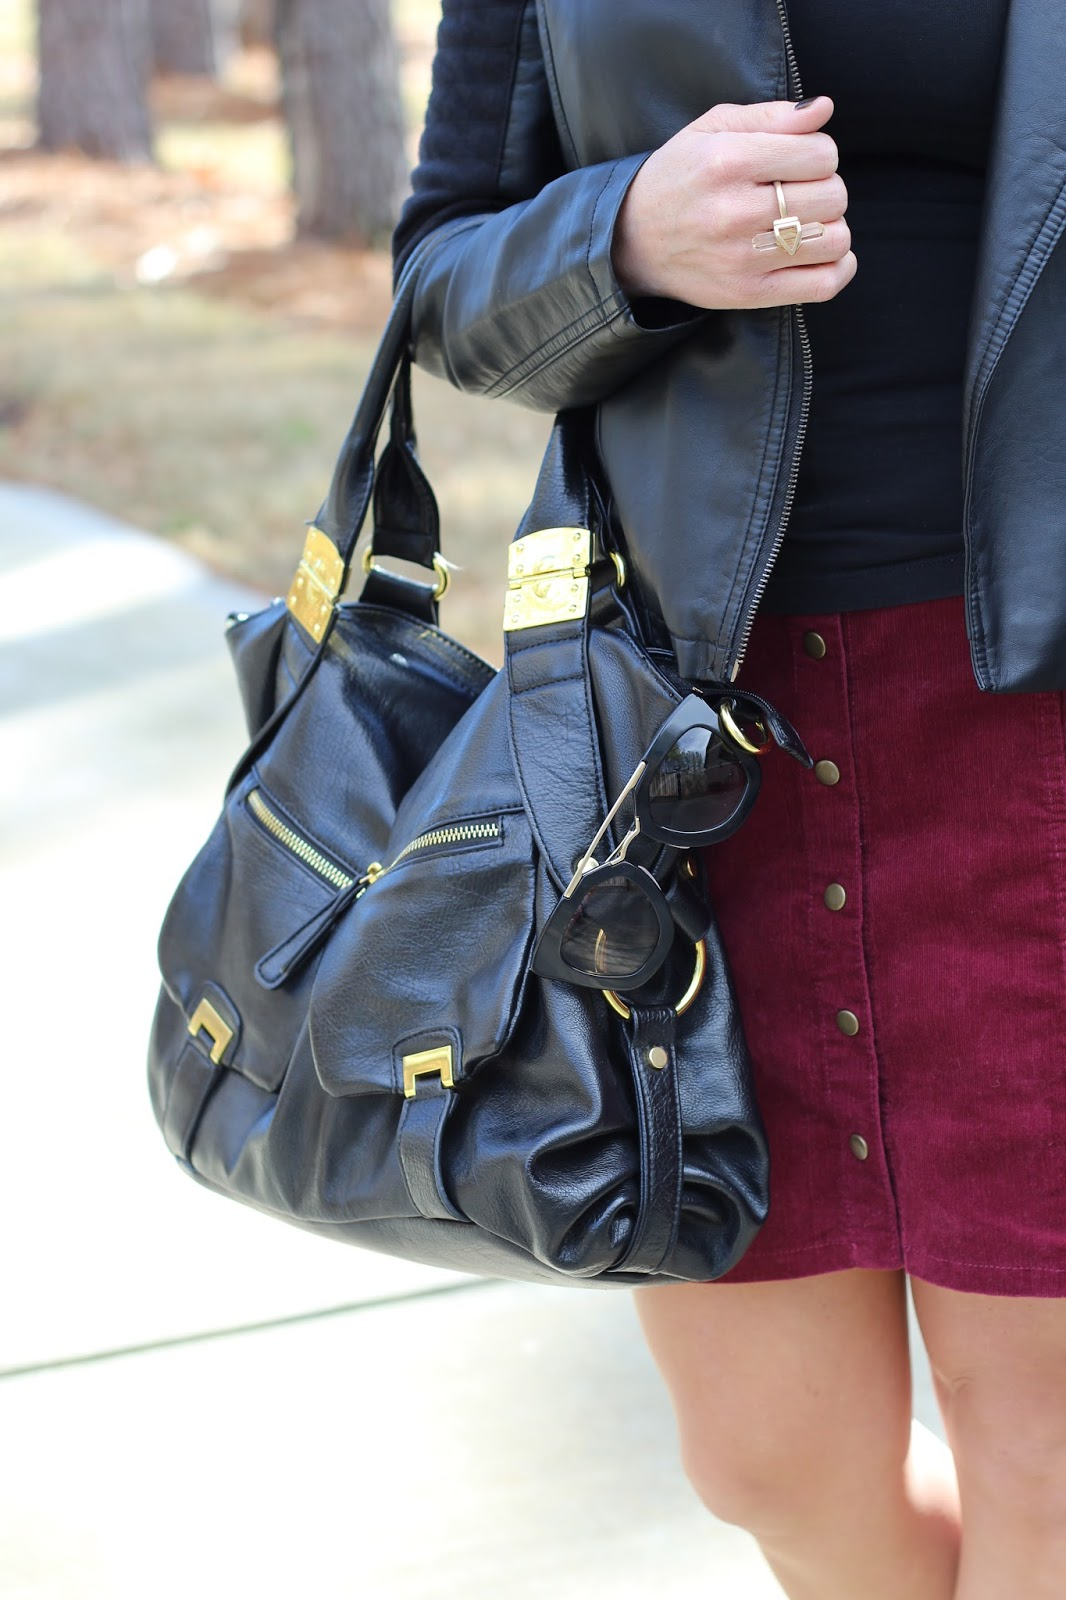 Black and Gold Hobo bag, corduroy skirt, prada sunglasses